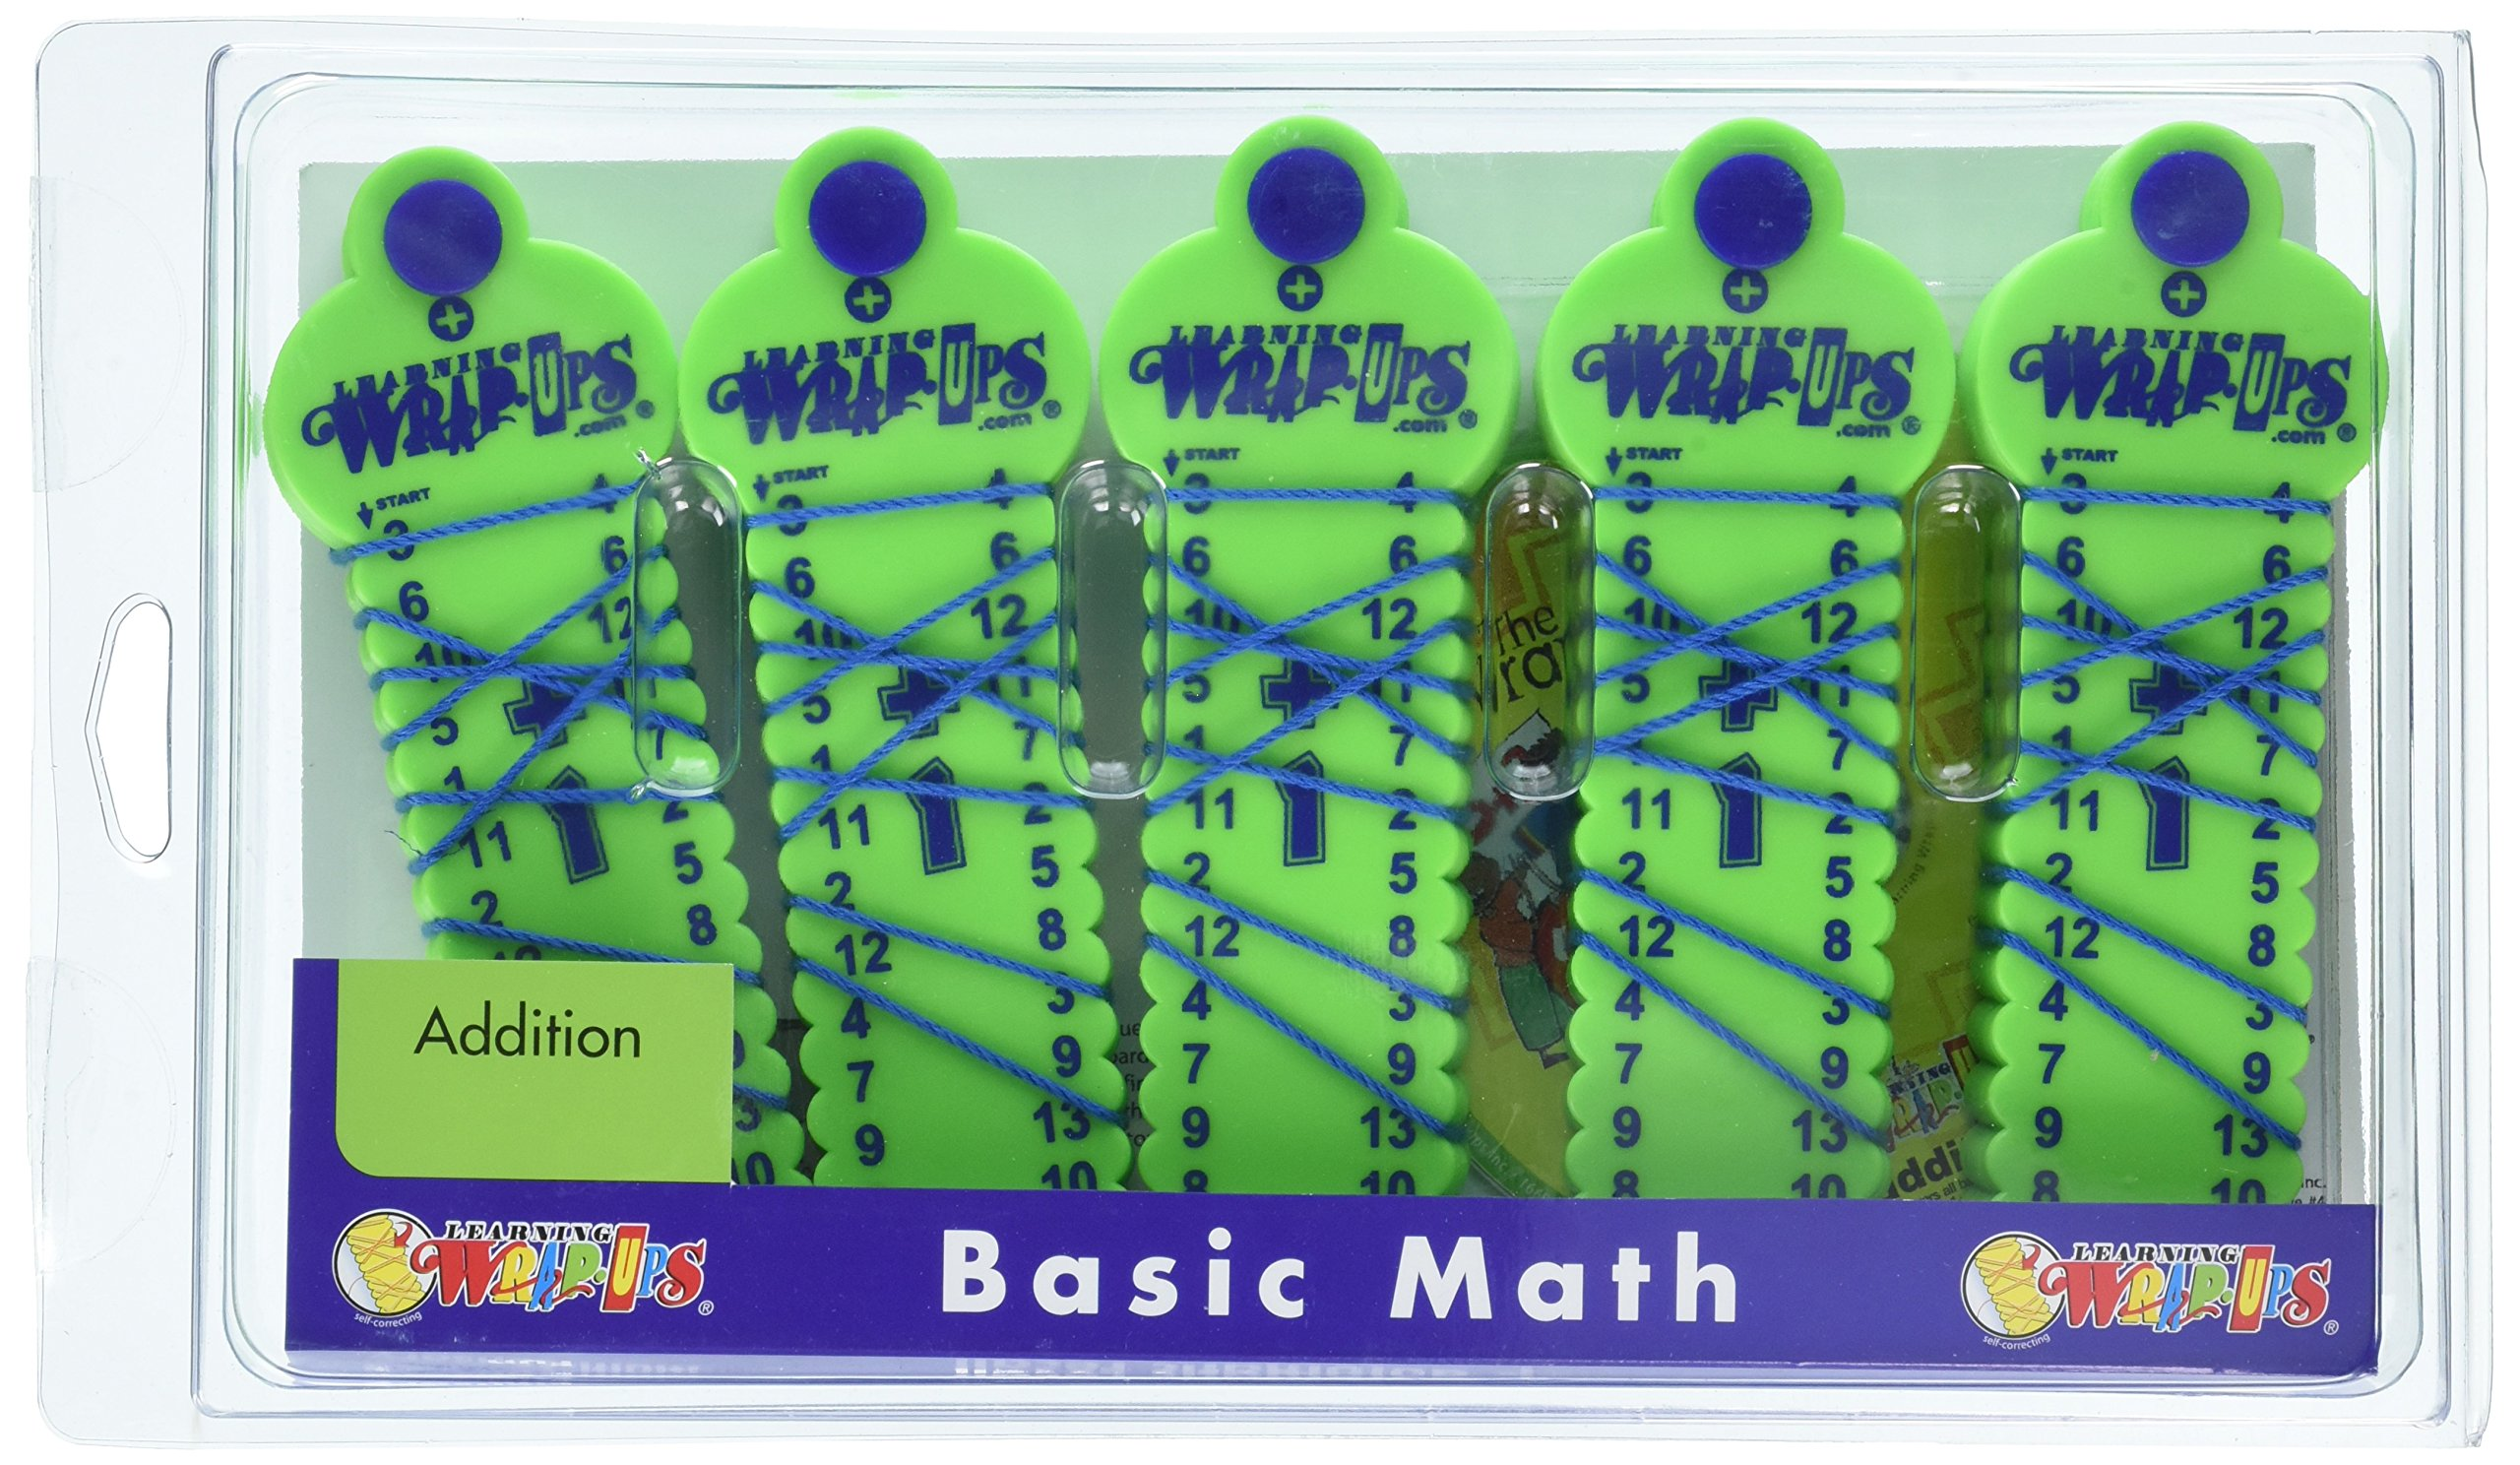 Learning Wrap-ups Self Correcting Addition Kit with CD